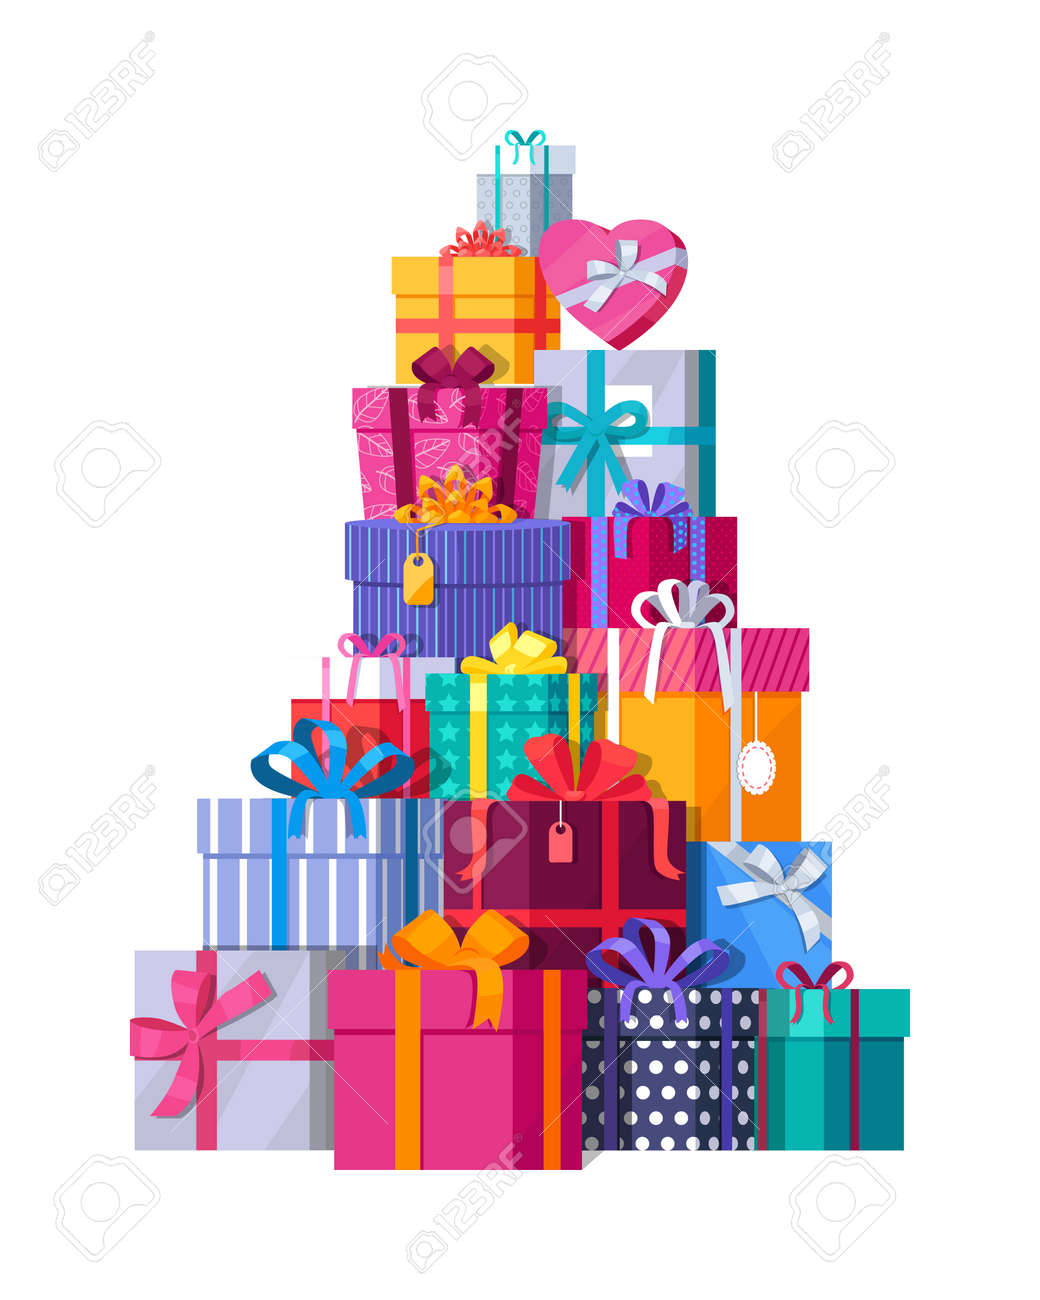 Mountain of colorful gift boxes on white background big stack of mountain of colorful gift boxes on white background big stack of christmas presents decorative negle Choice Image